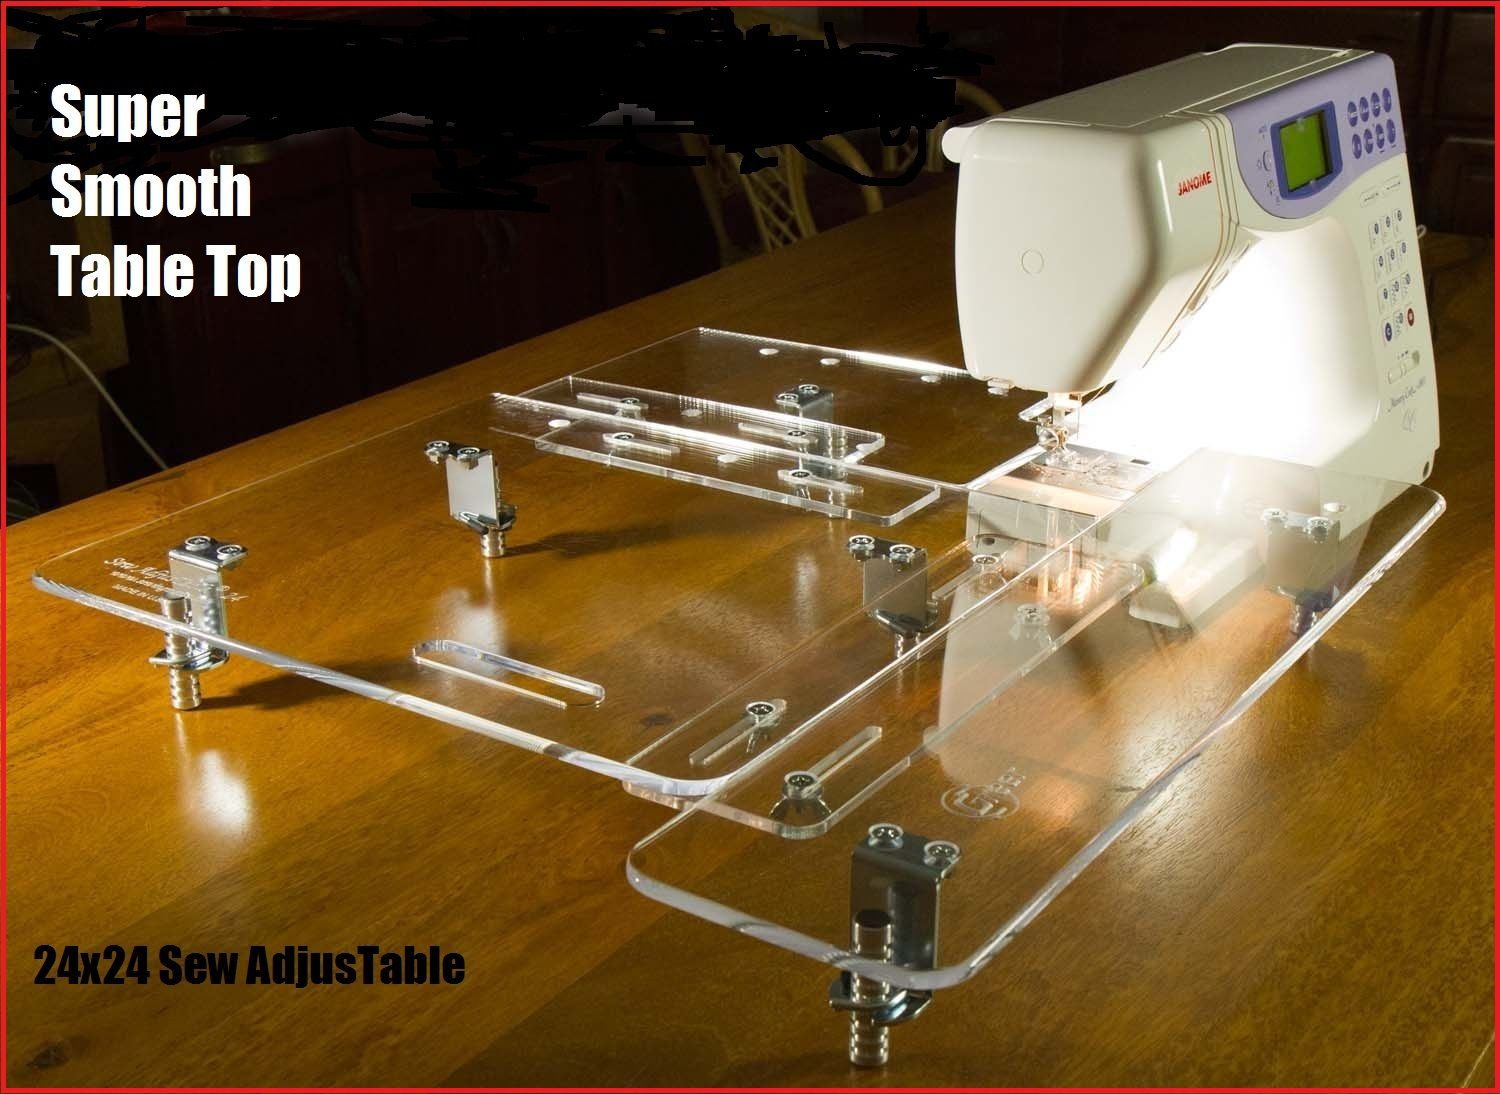 Tailormade Sewing Cabinet Diy Sewing Machine Extension Table Sewing Projects Pinterest